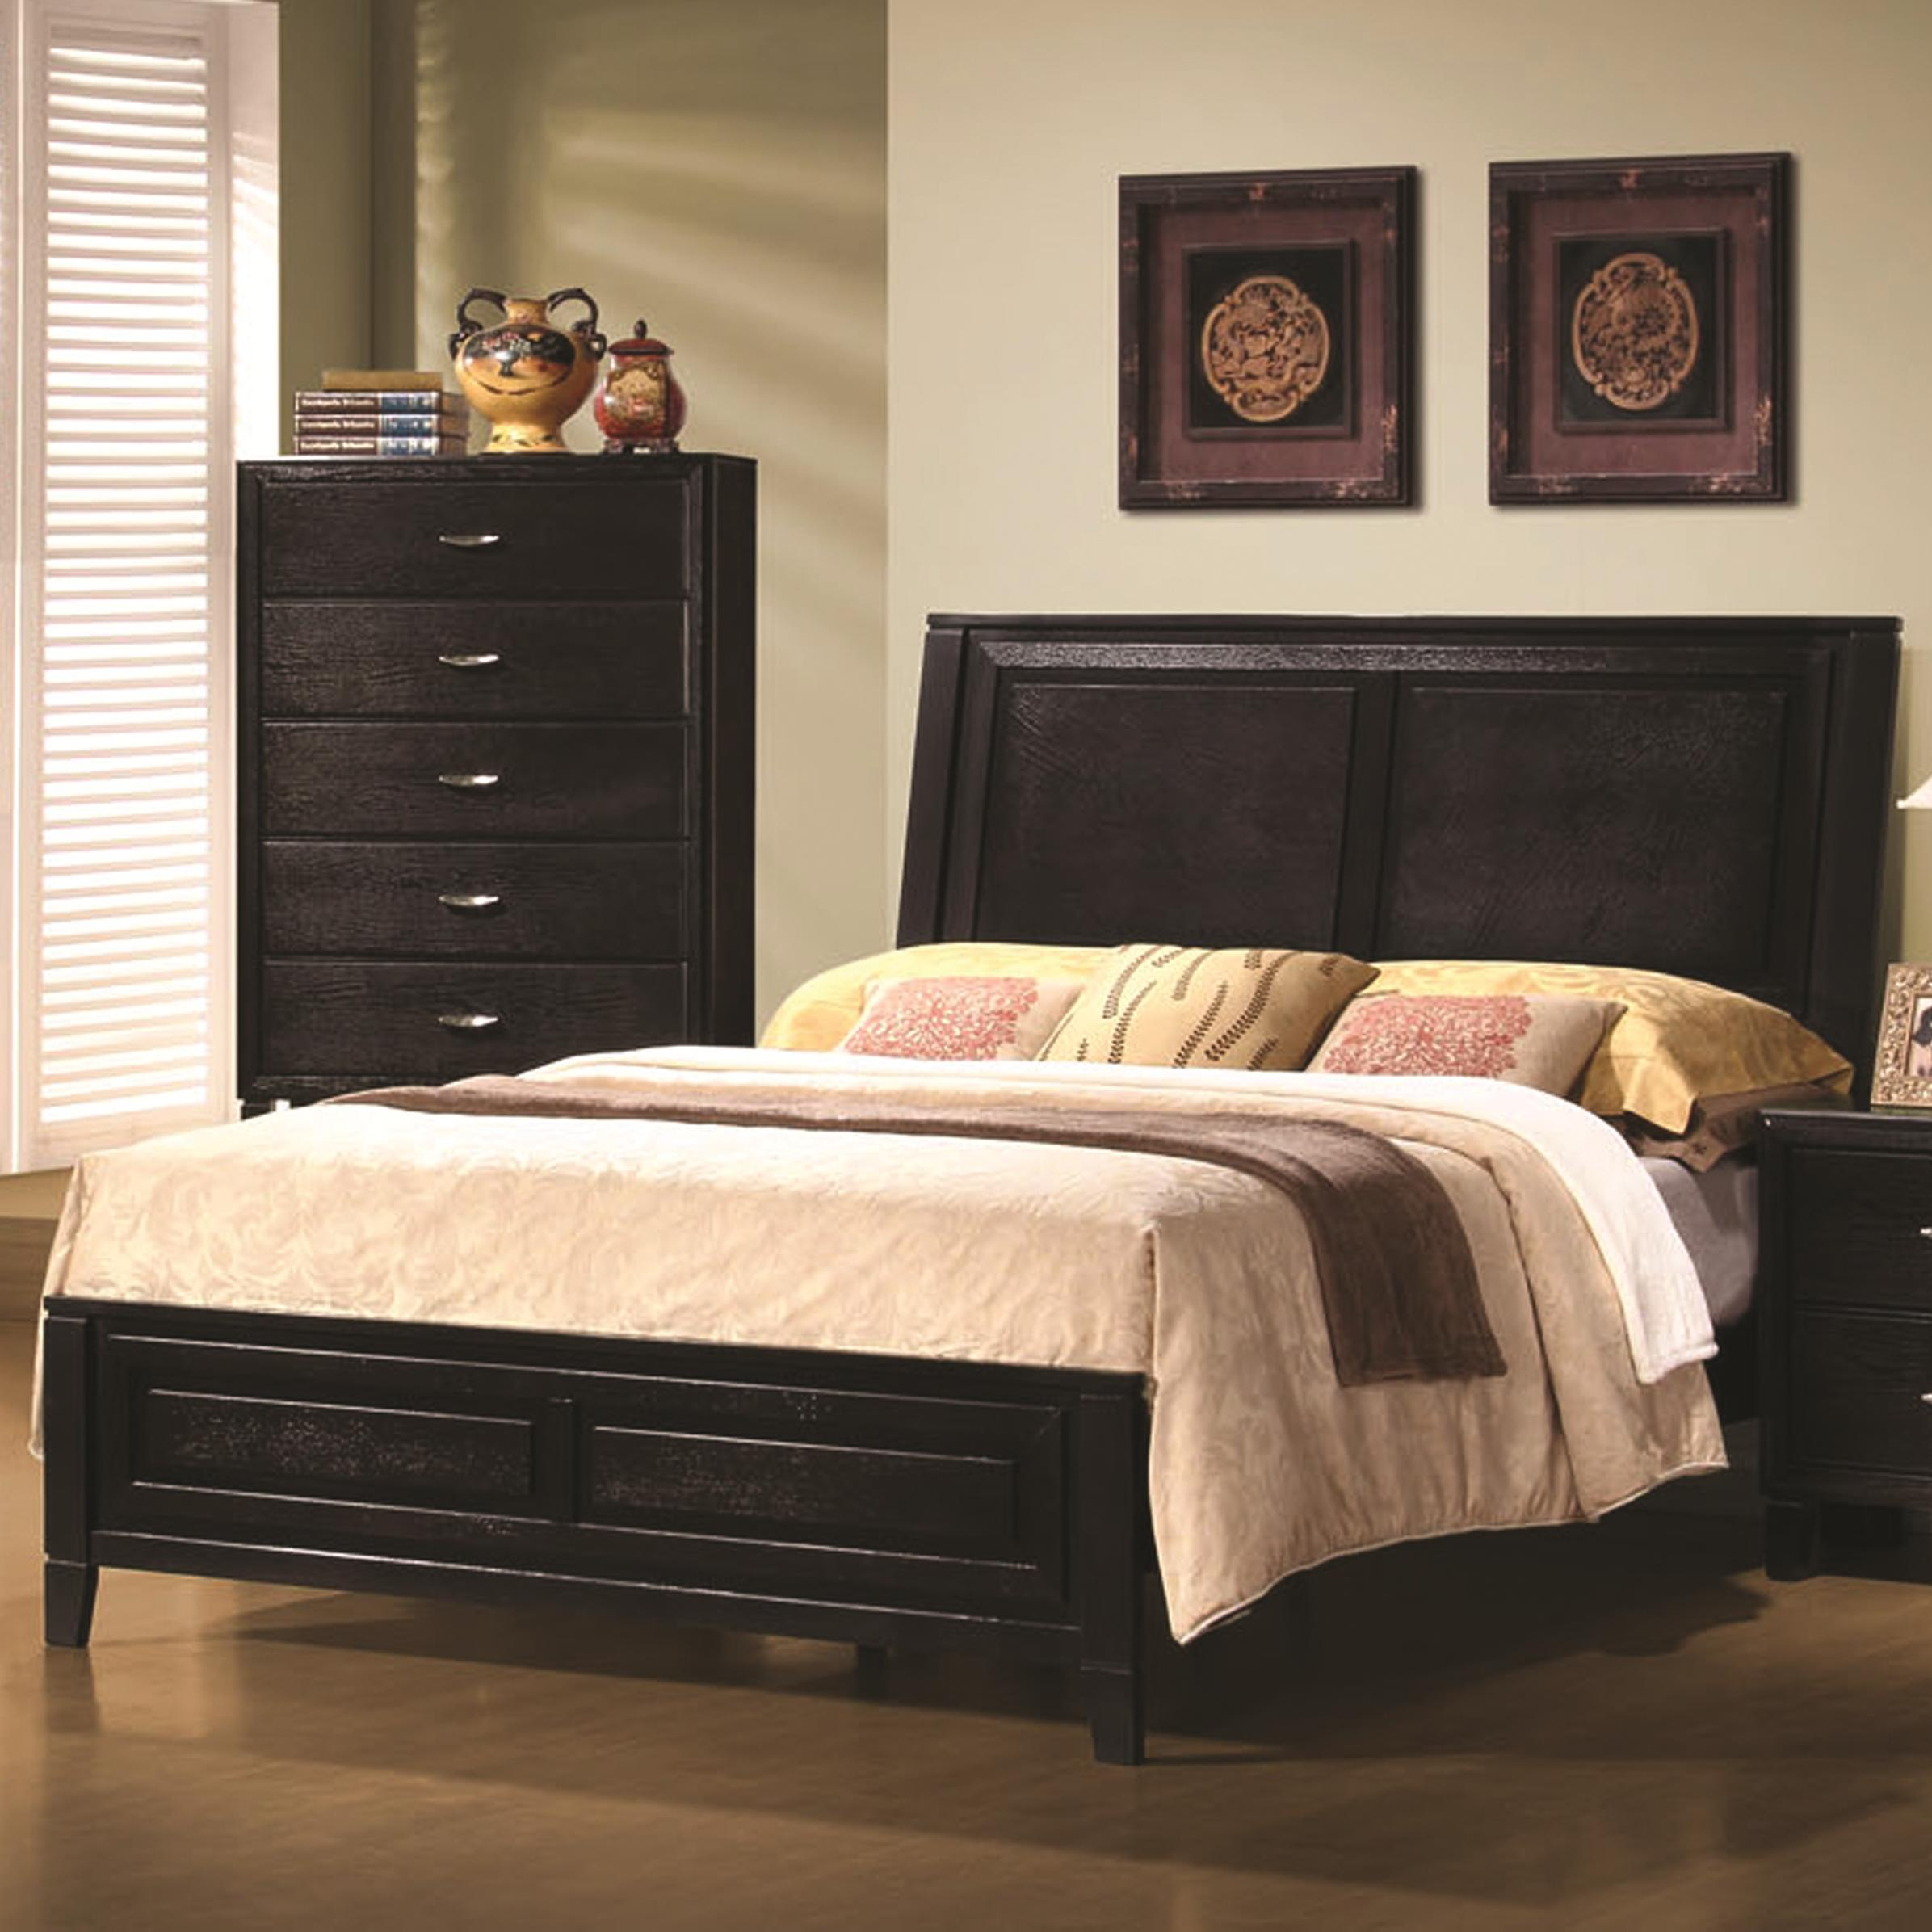 Coaster Nacey Queen Contemporary Headboard and Footboard Bed